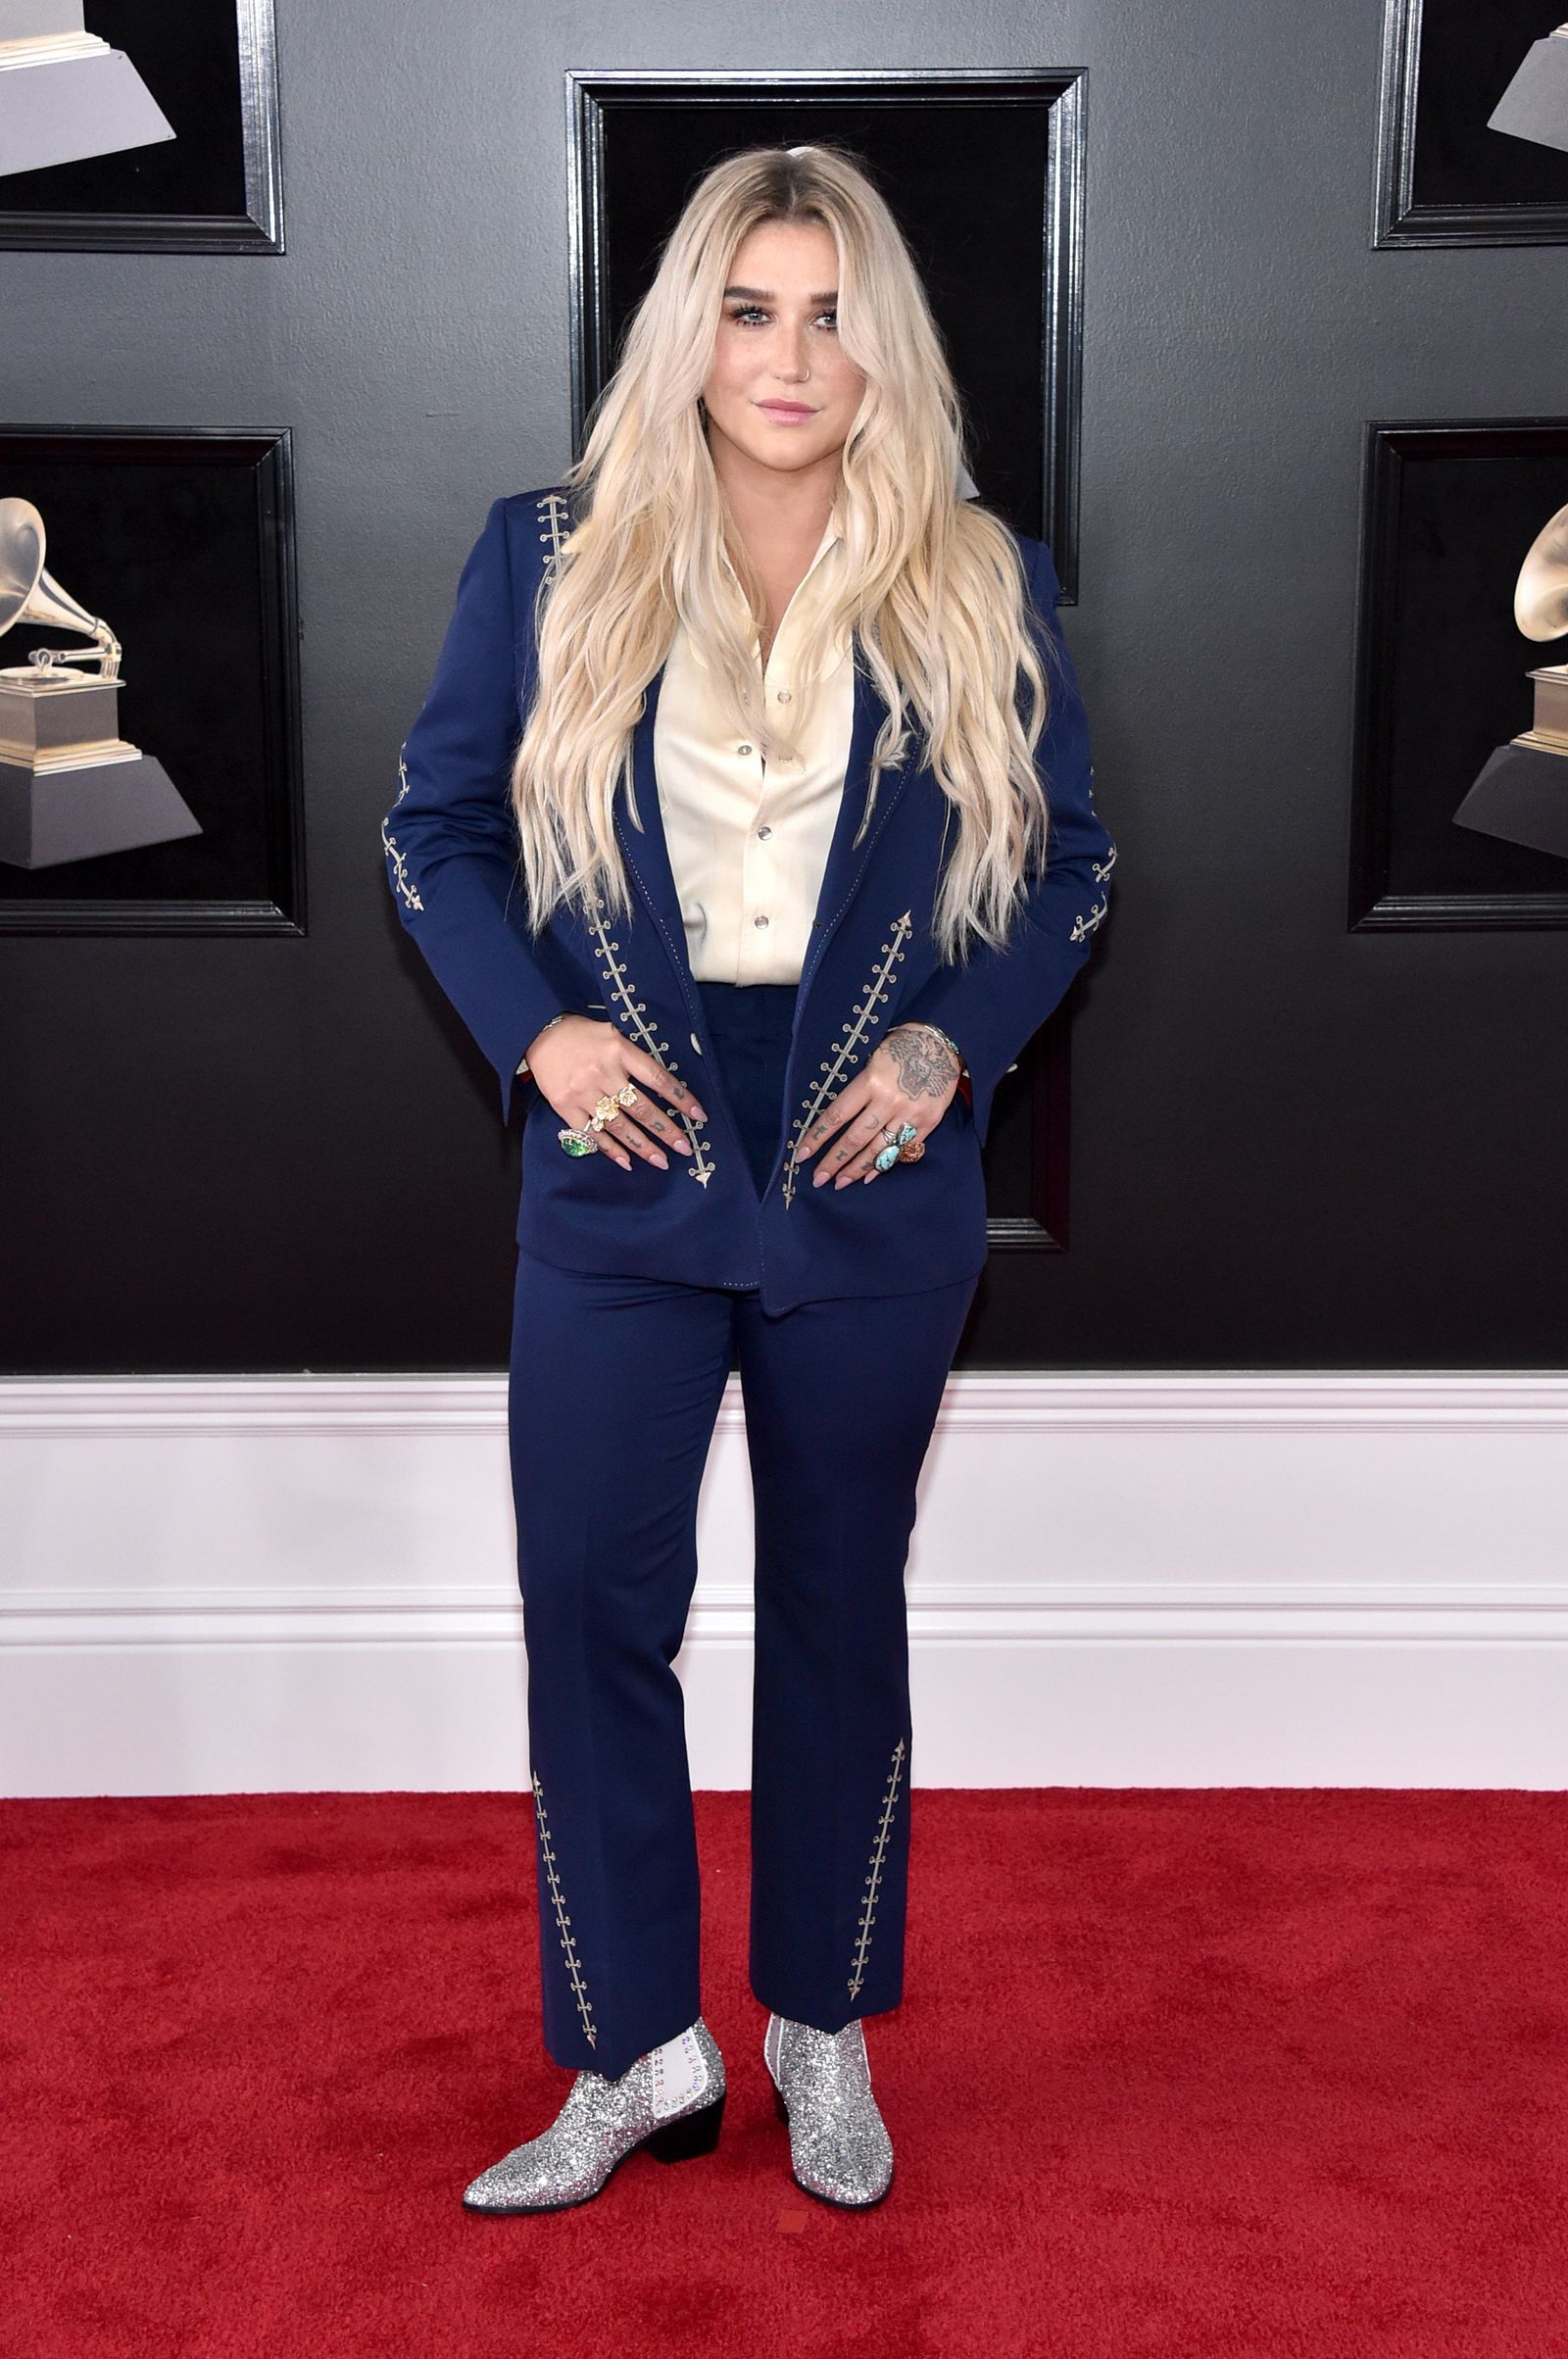 Kostüm Roter Teppich See All The Best Looks From The 2018 Grammys Red Carpet